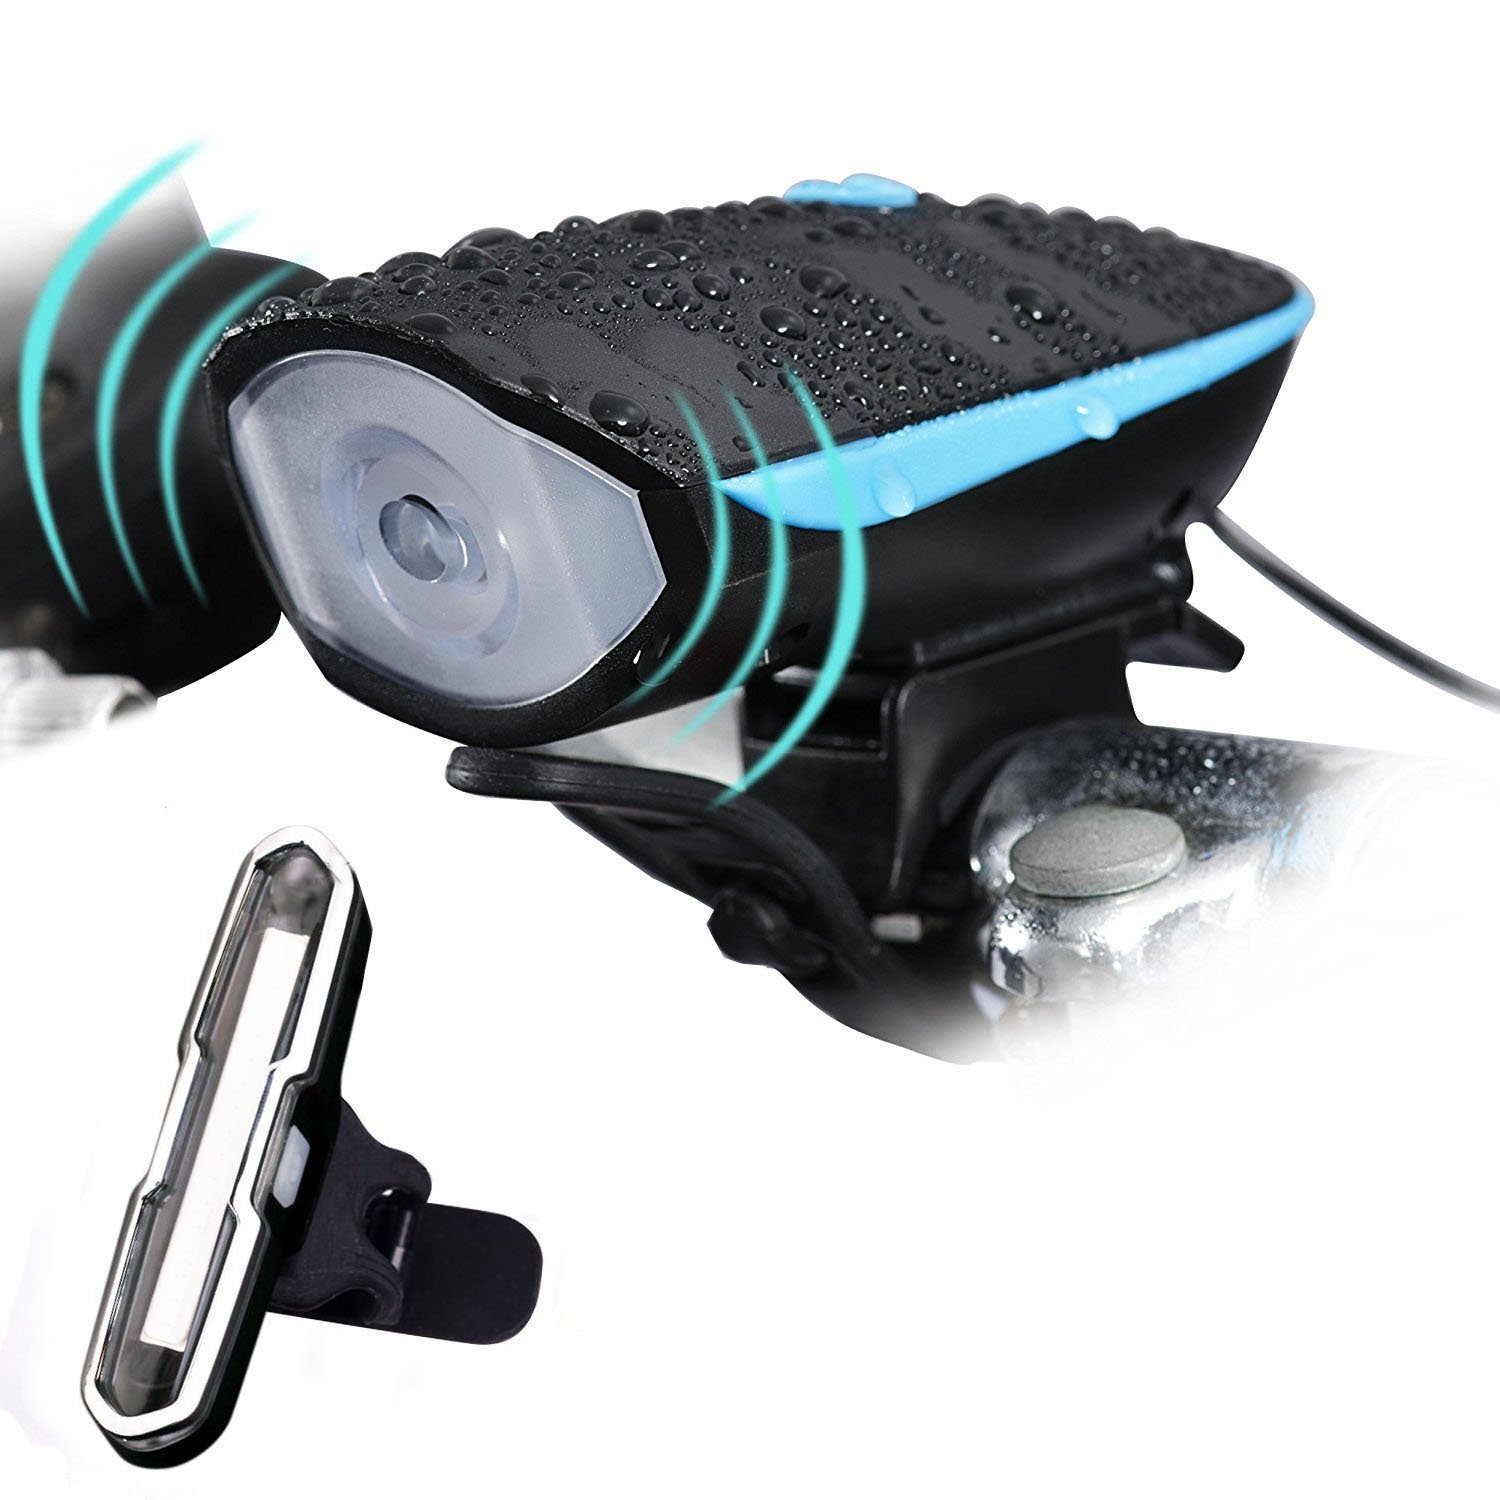 Banzi Mountain Bike Light Set, Super Bright Waterproof USB Rechargeable Front and Rear Bicycle Light Set with 140 DB Loud Horn